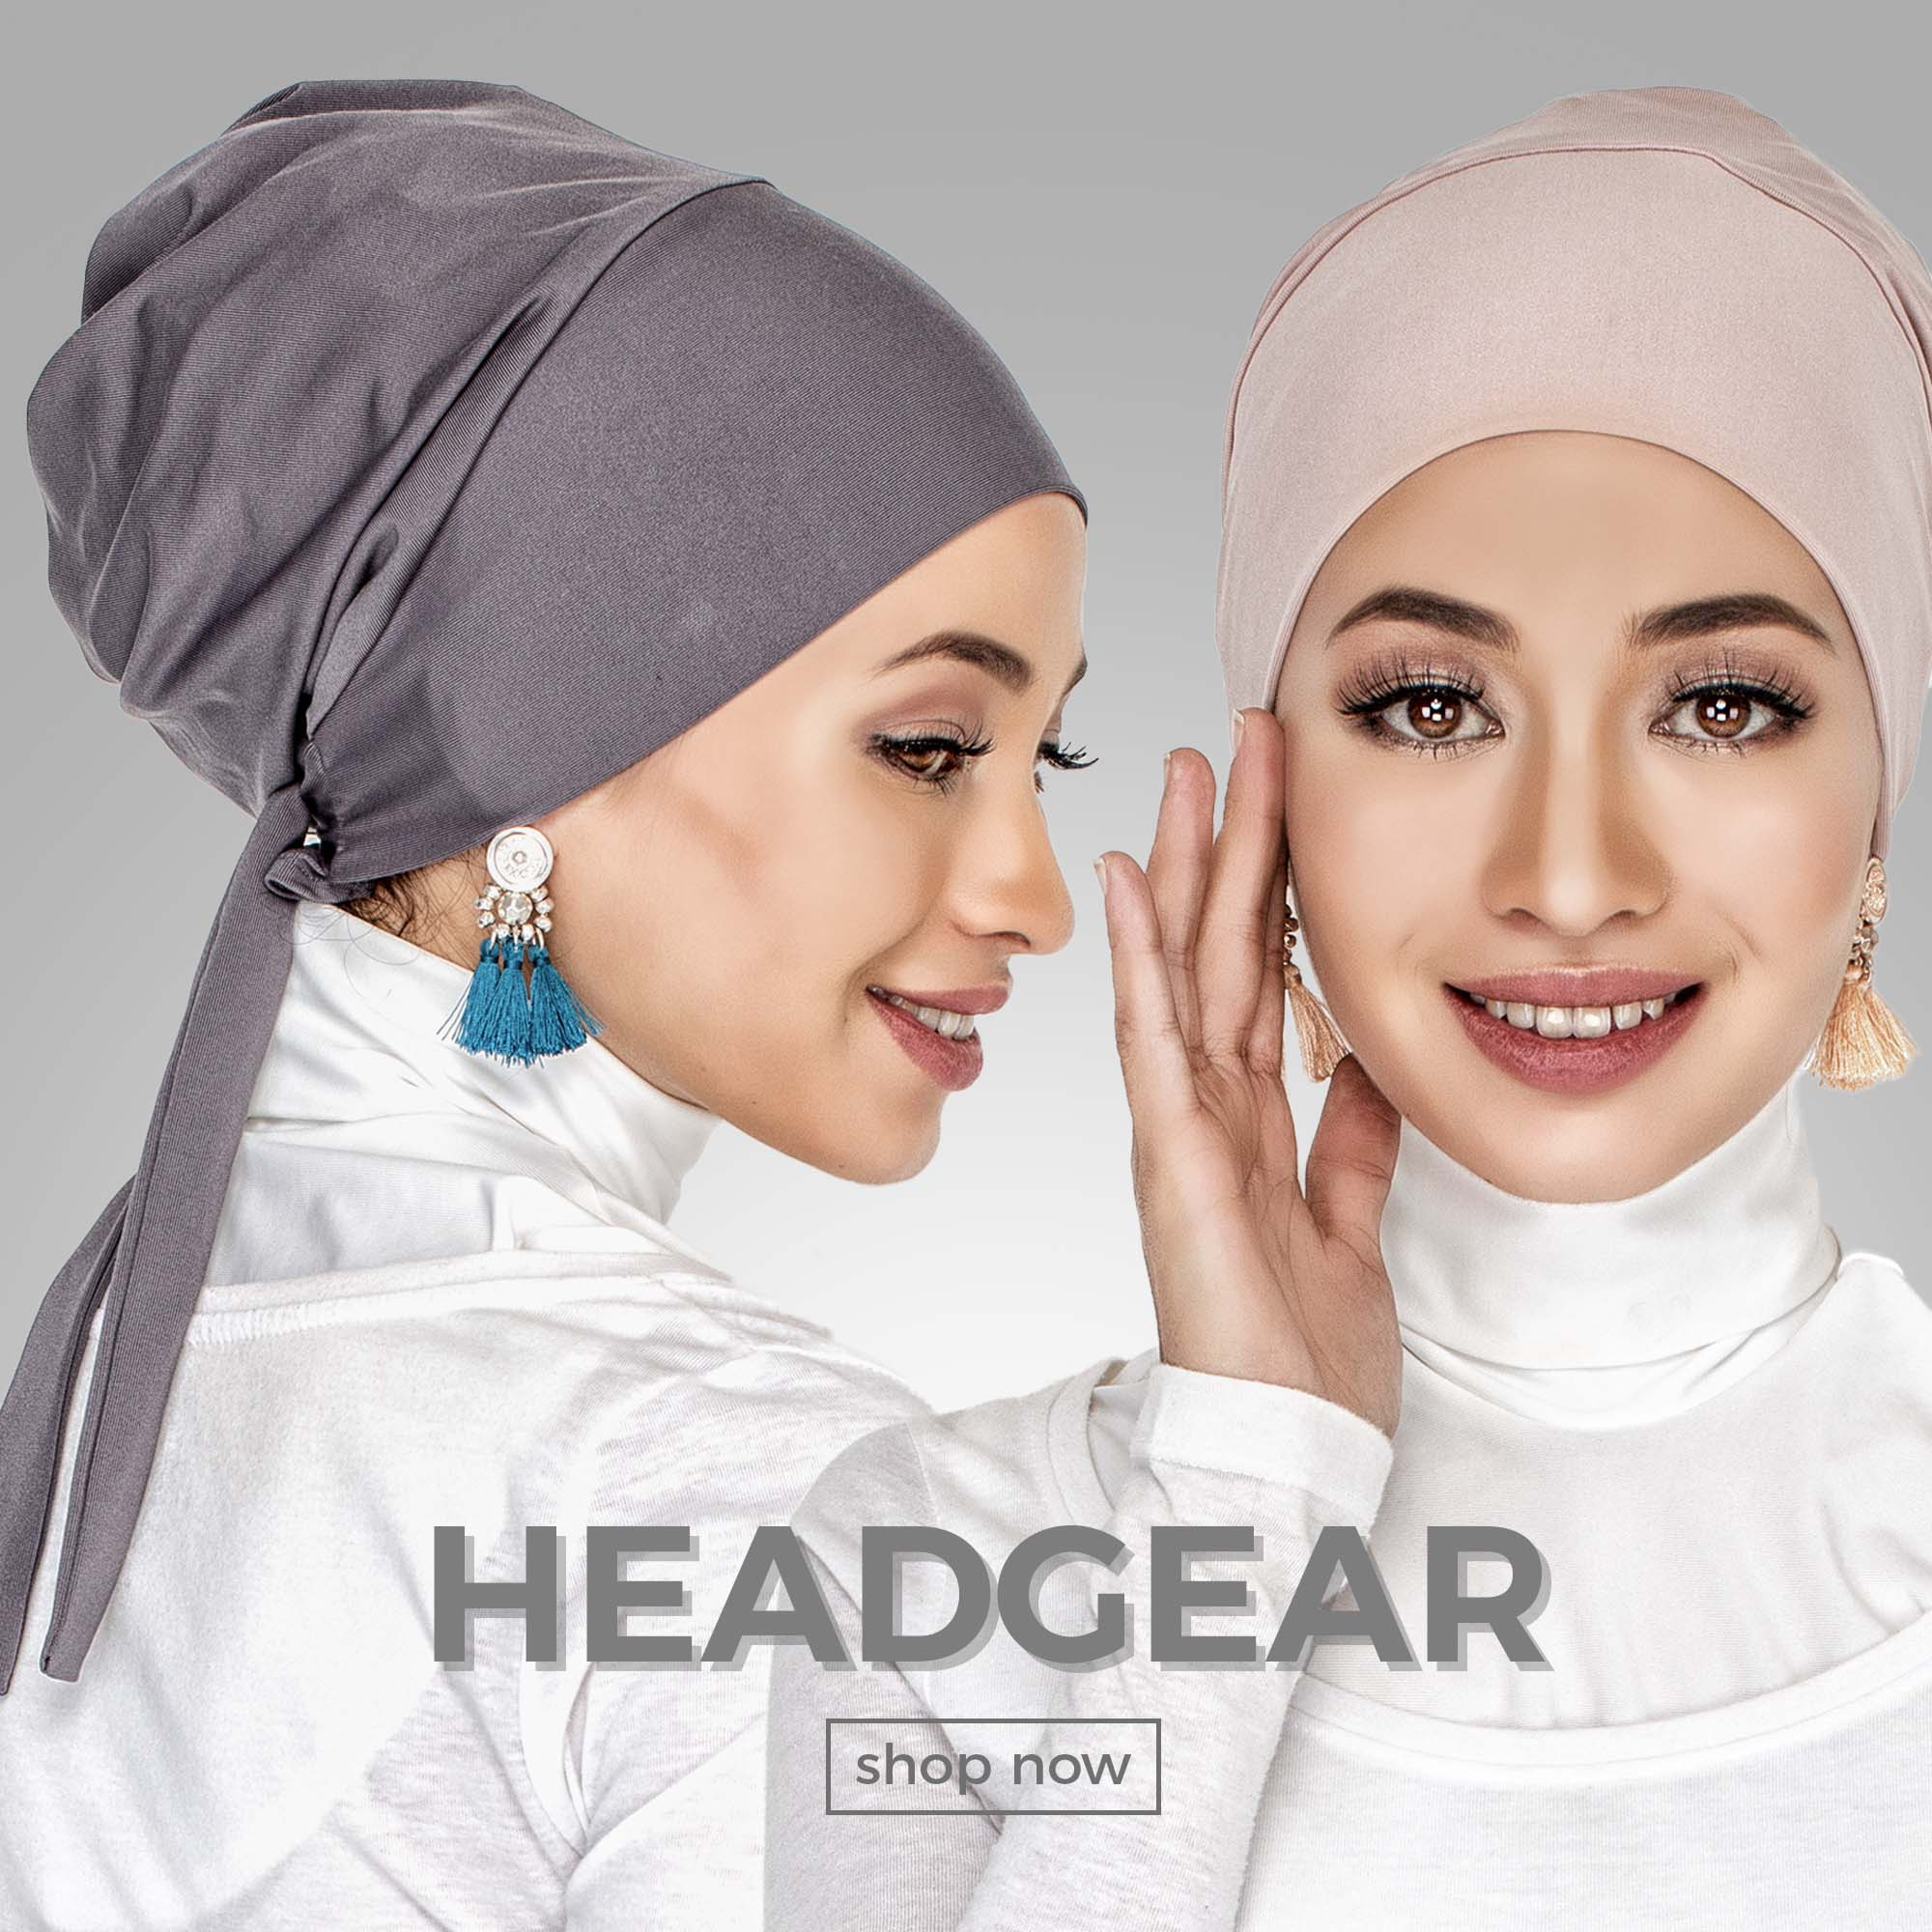 Head gear collection by AIRAZ InnerSejuk